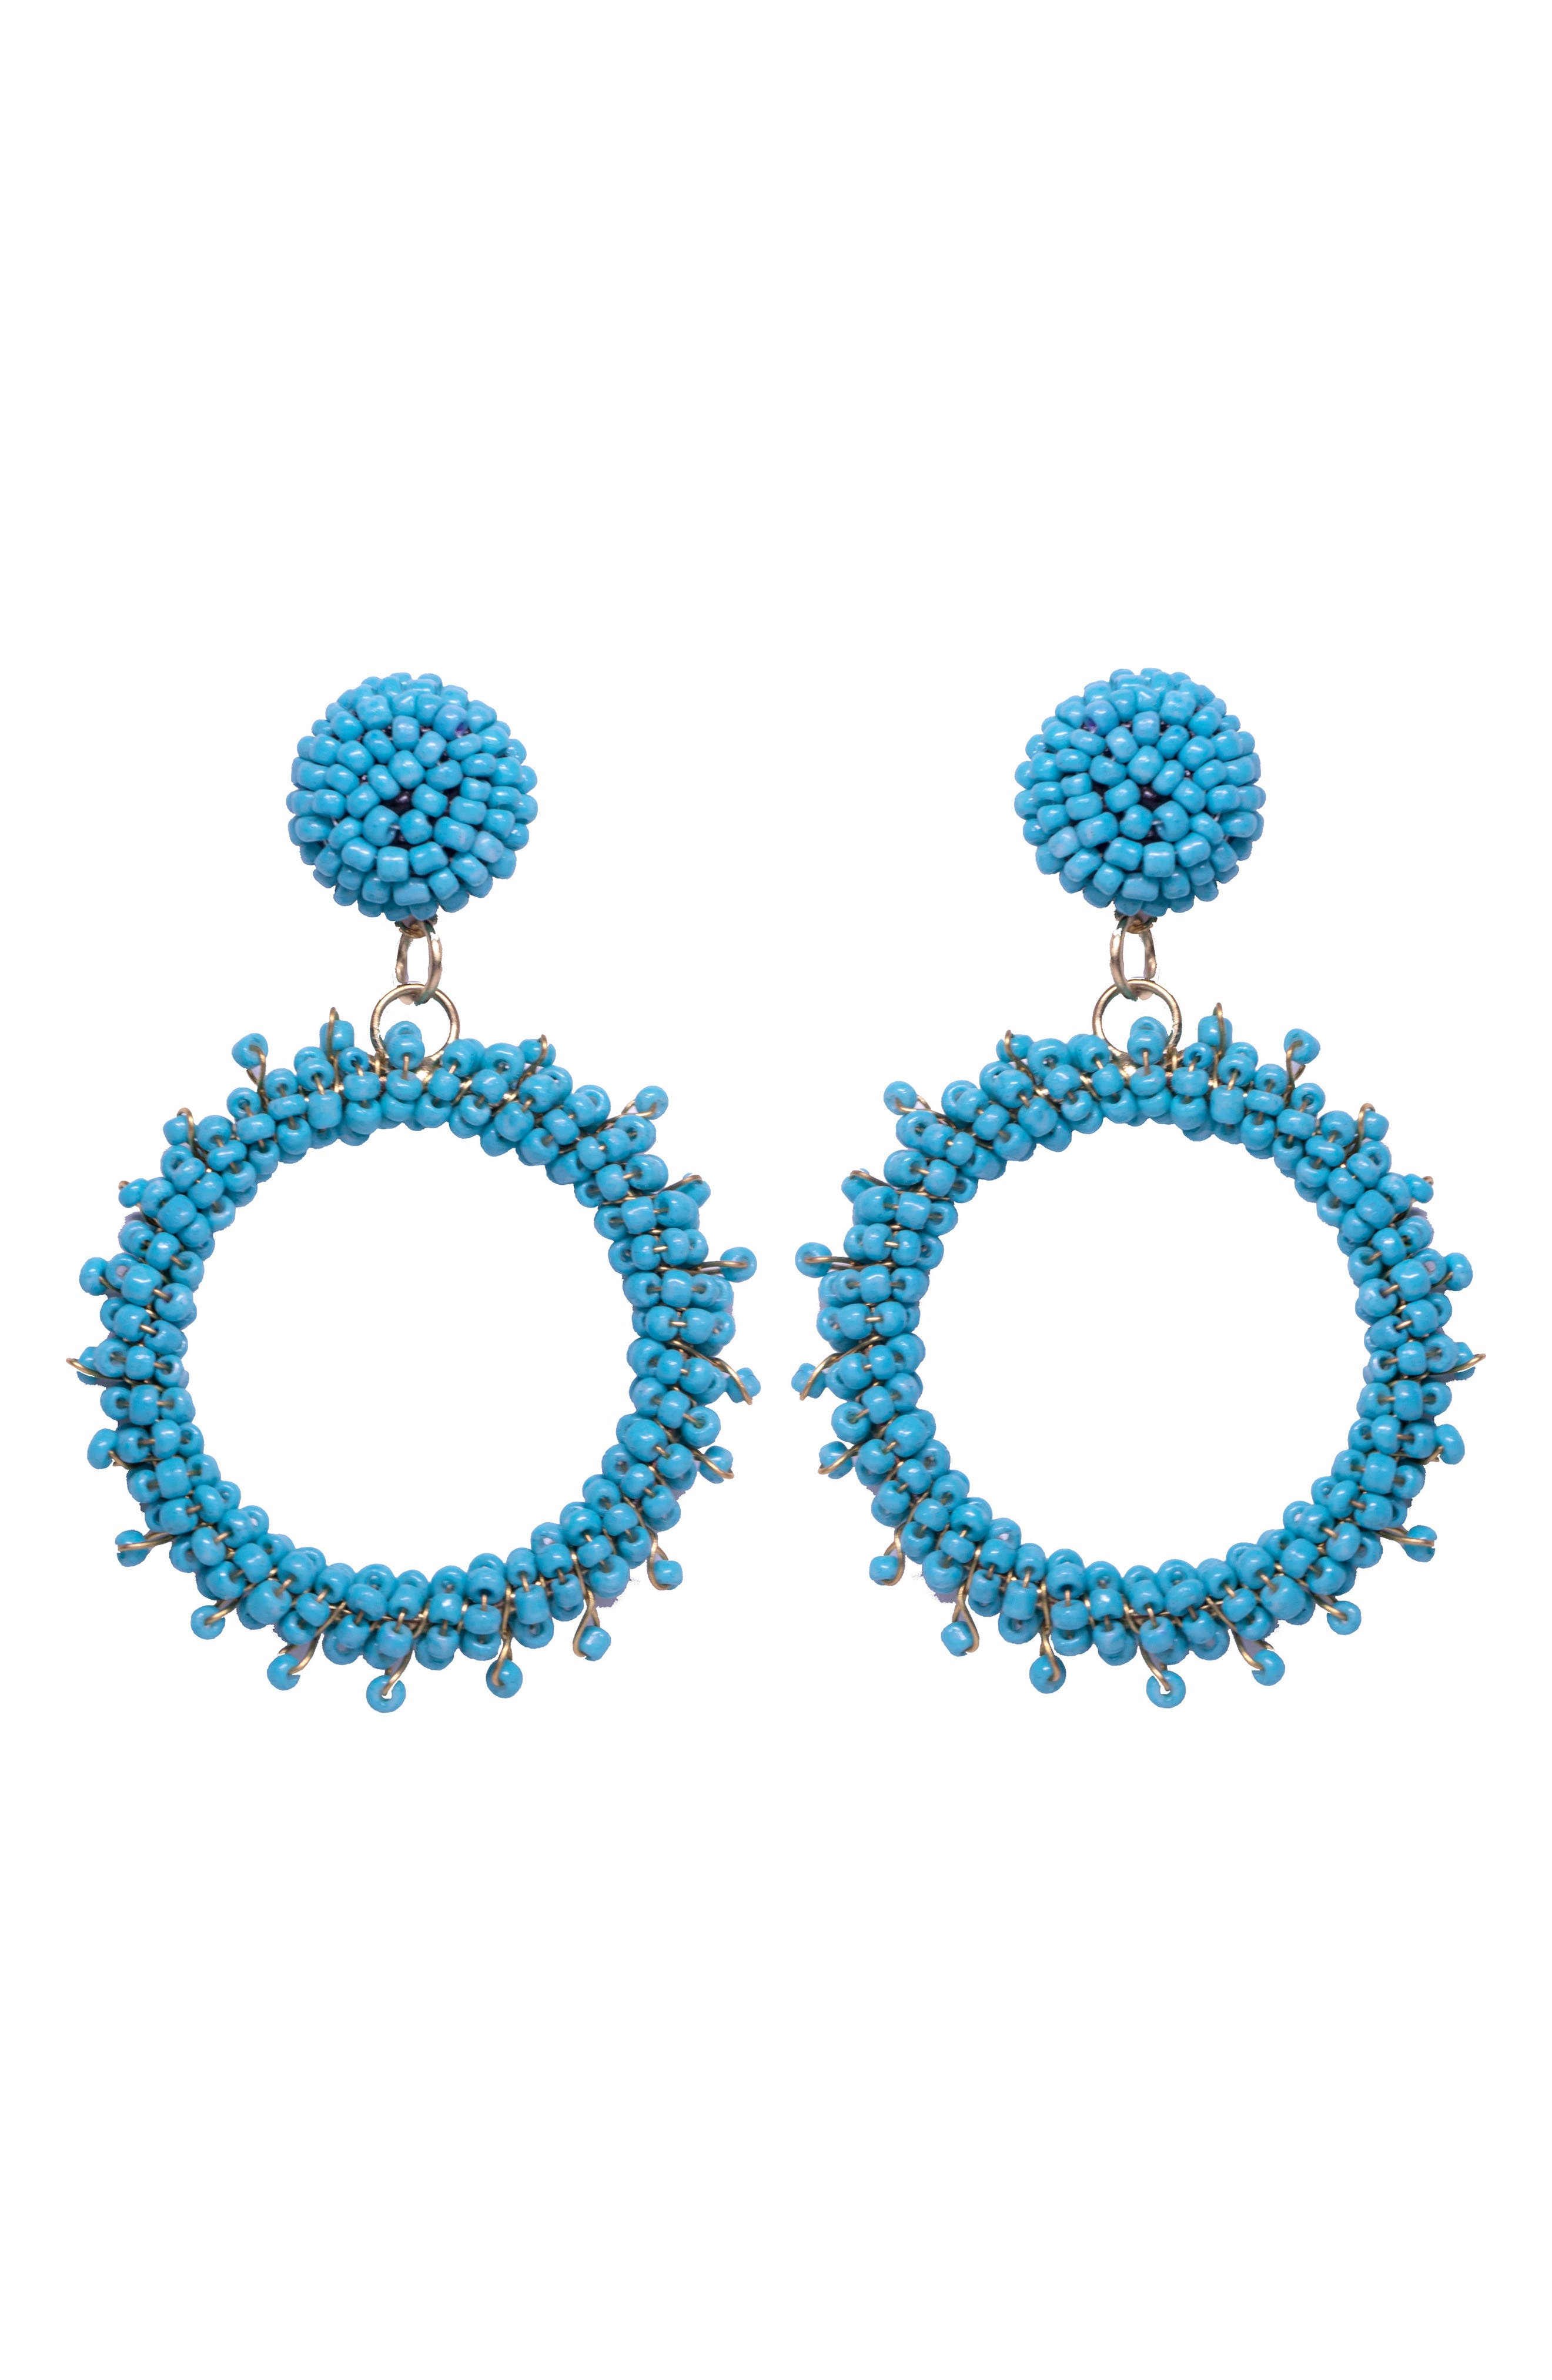 Marie Drop Earrings,                         Main,                         color, Turquoise